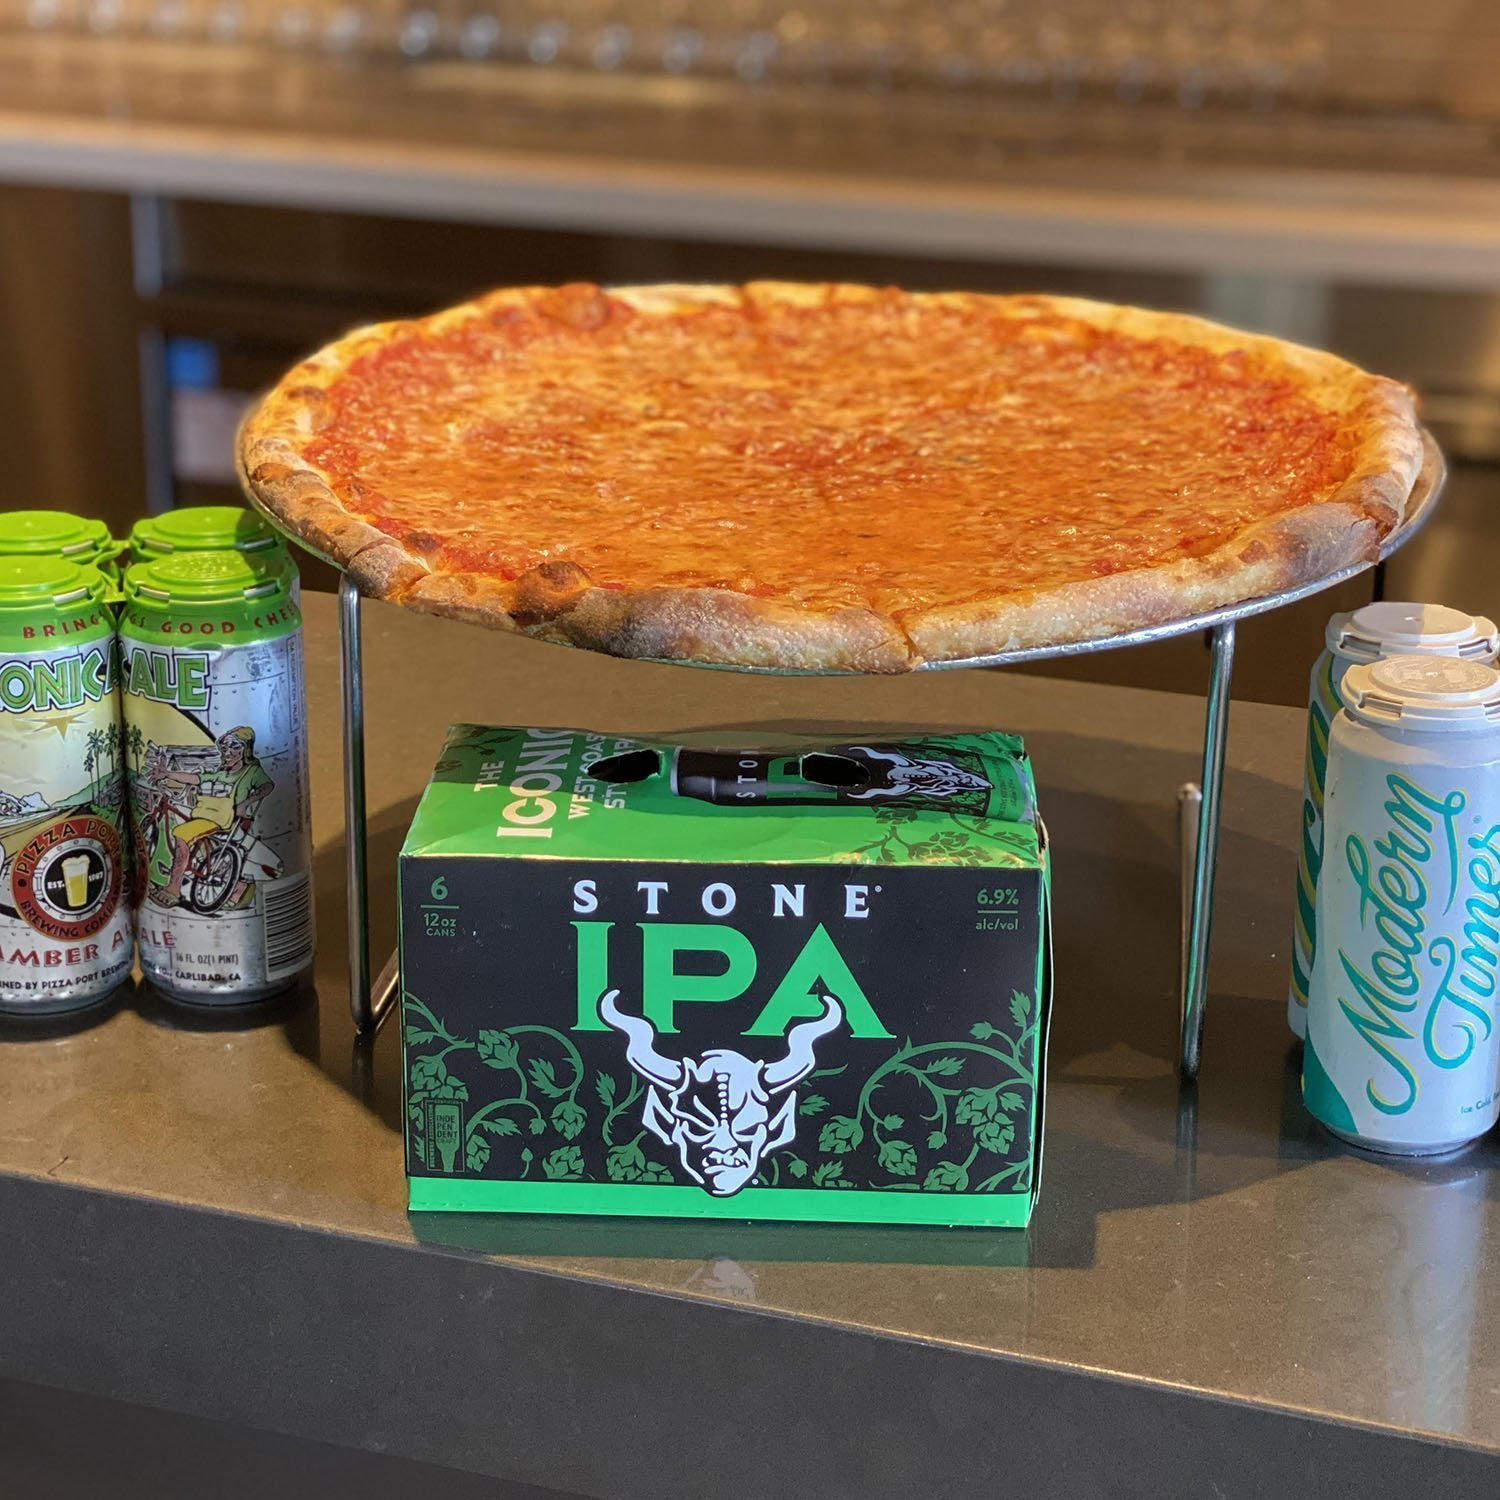 A cheese pizza with various canned beer options below